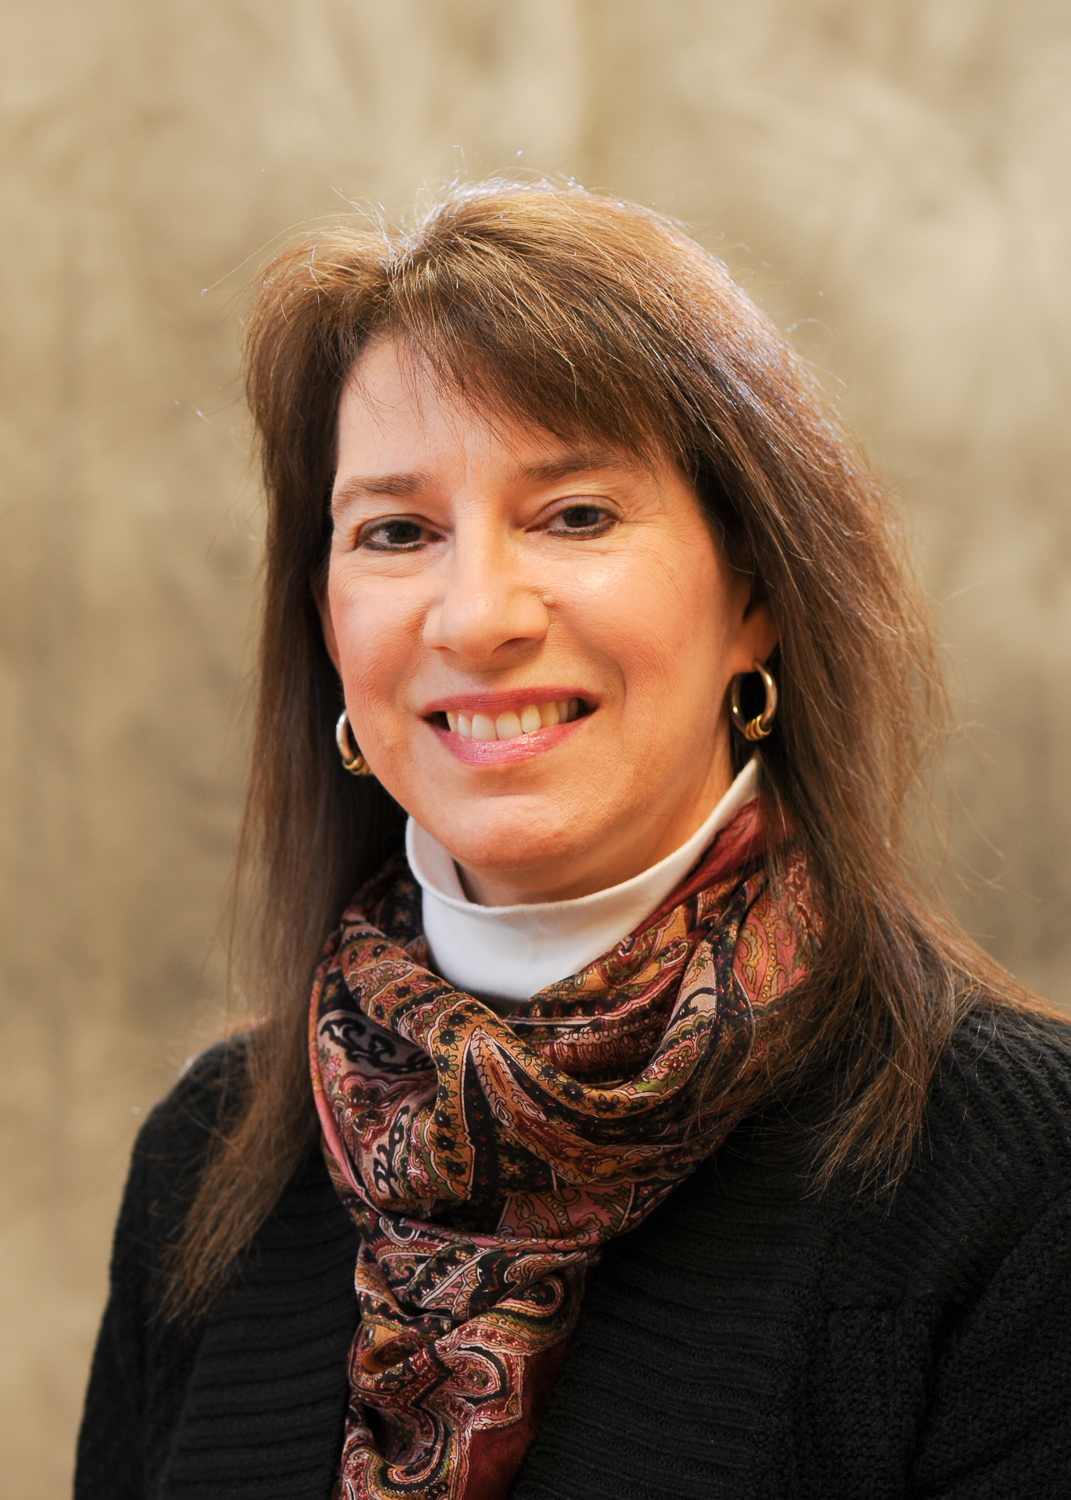 Jane Amsden, LCSW-R Program Director, Mental Health Counseling & Treatment Services